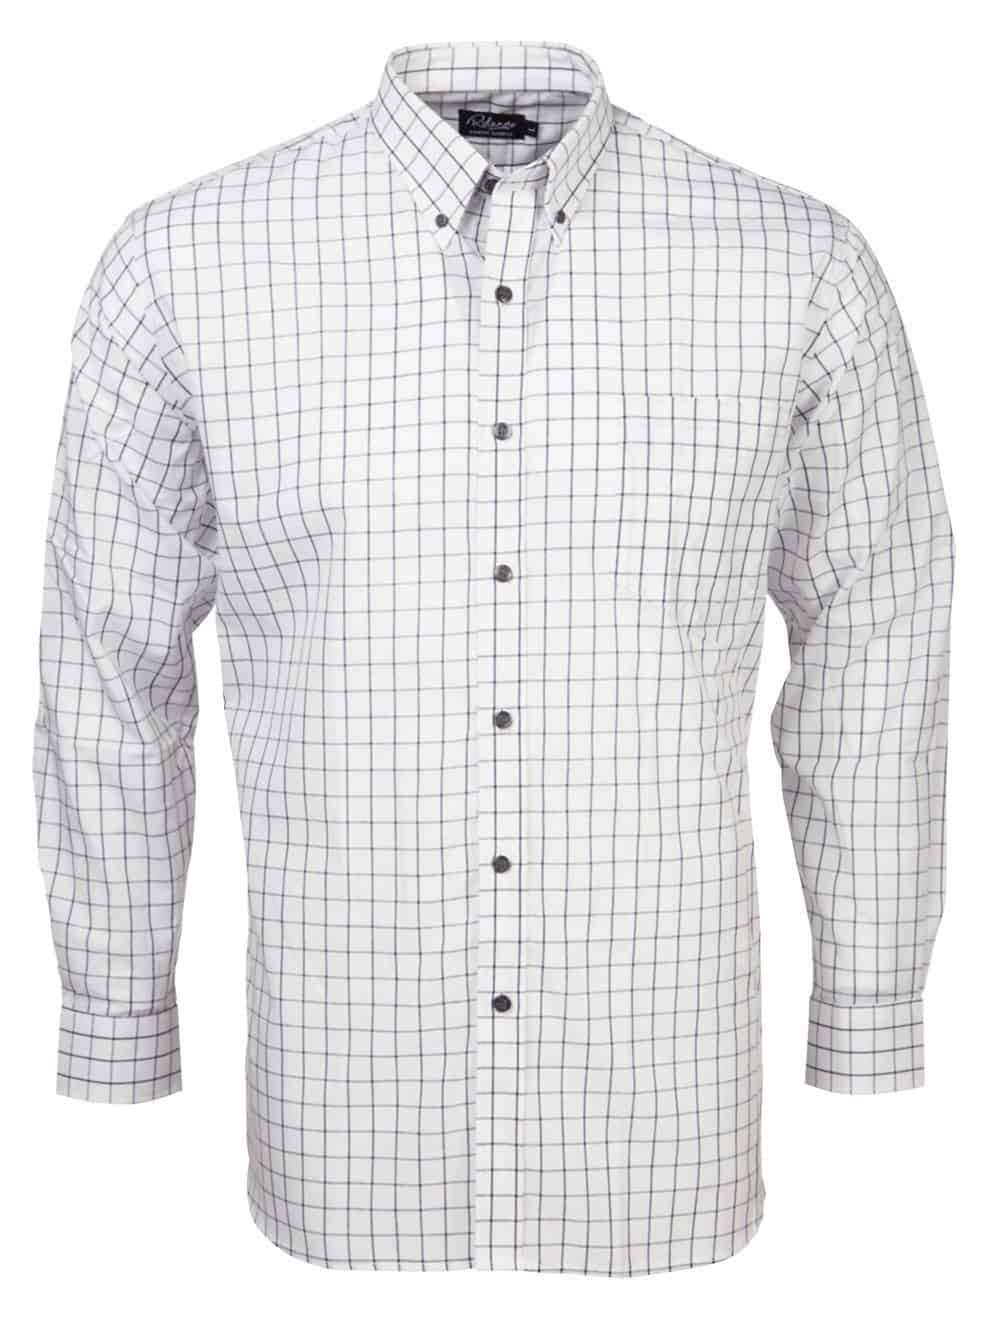 K114 L/S Lounge Shirts and Blouses